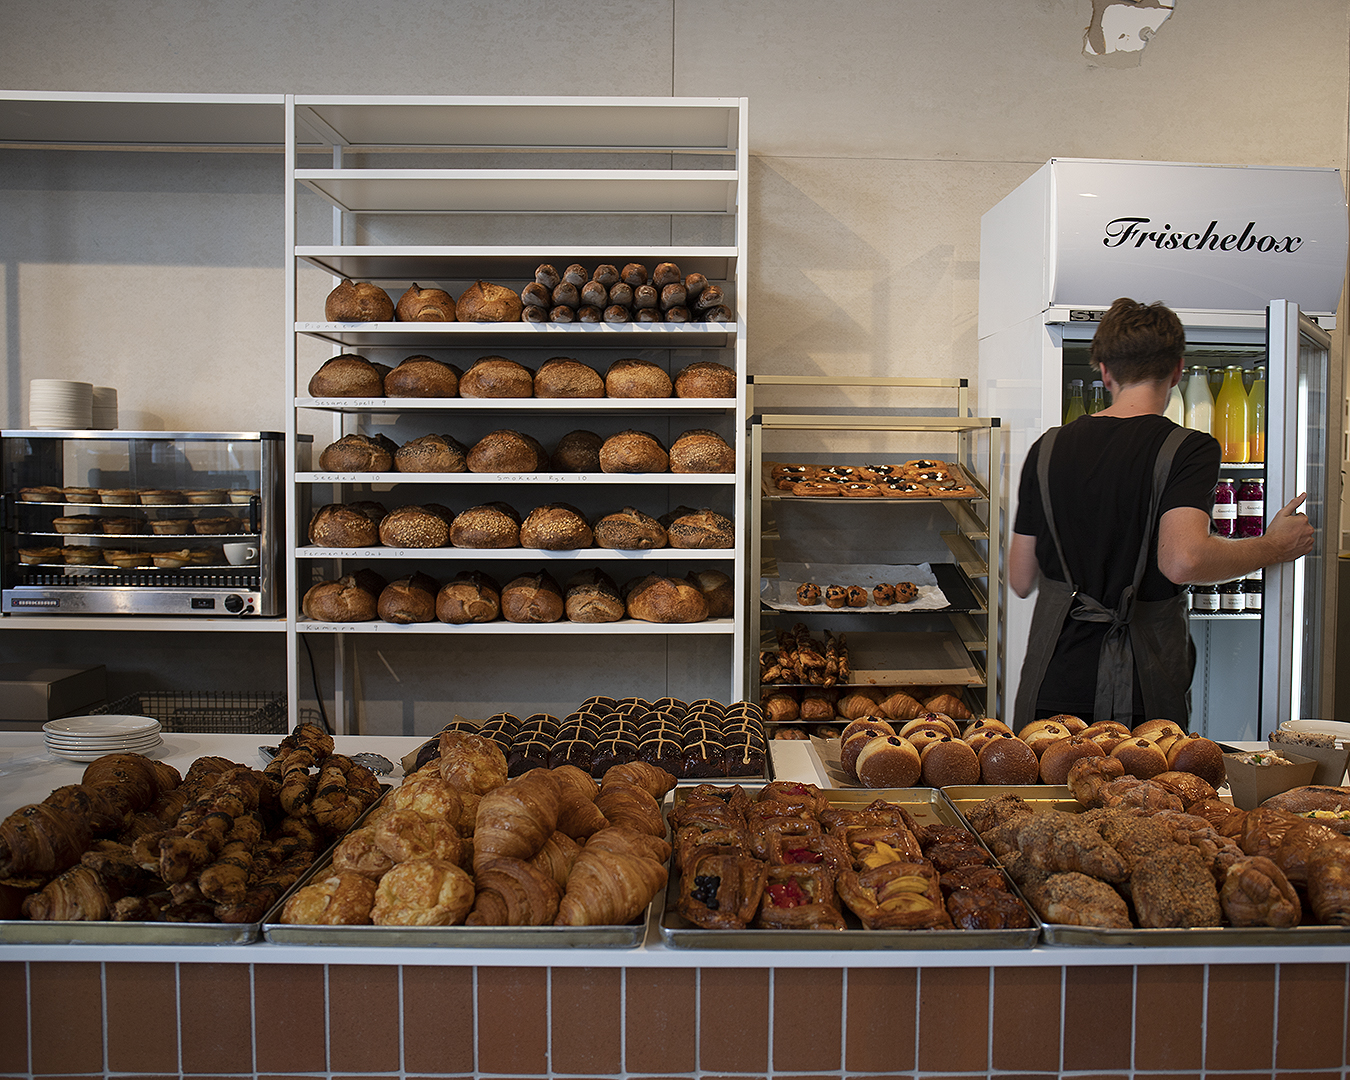 A server dives into the chiller cabinet at Daily Bread with an array of delicious baked goods in the foreground.